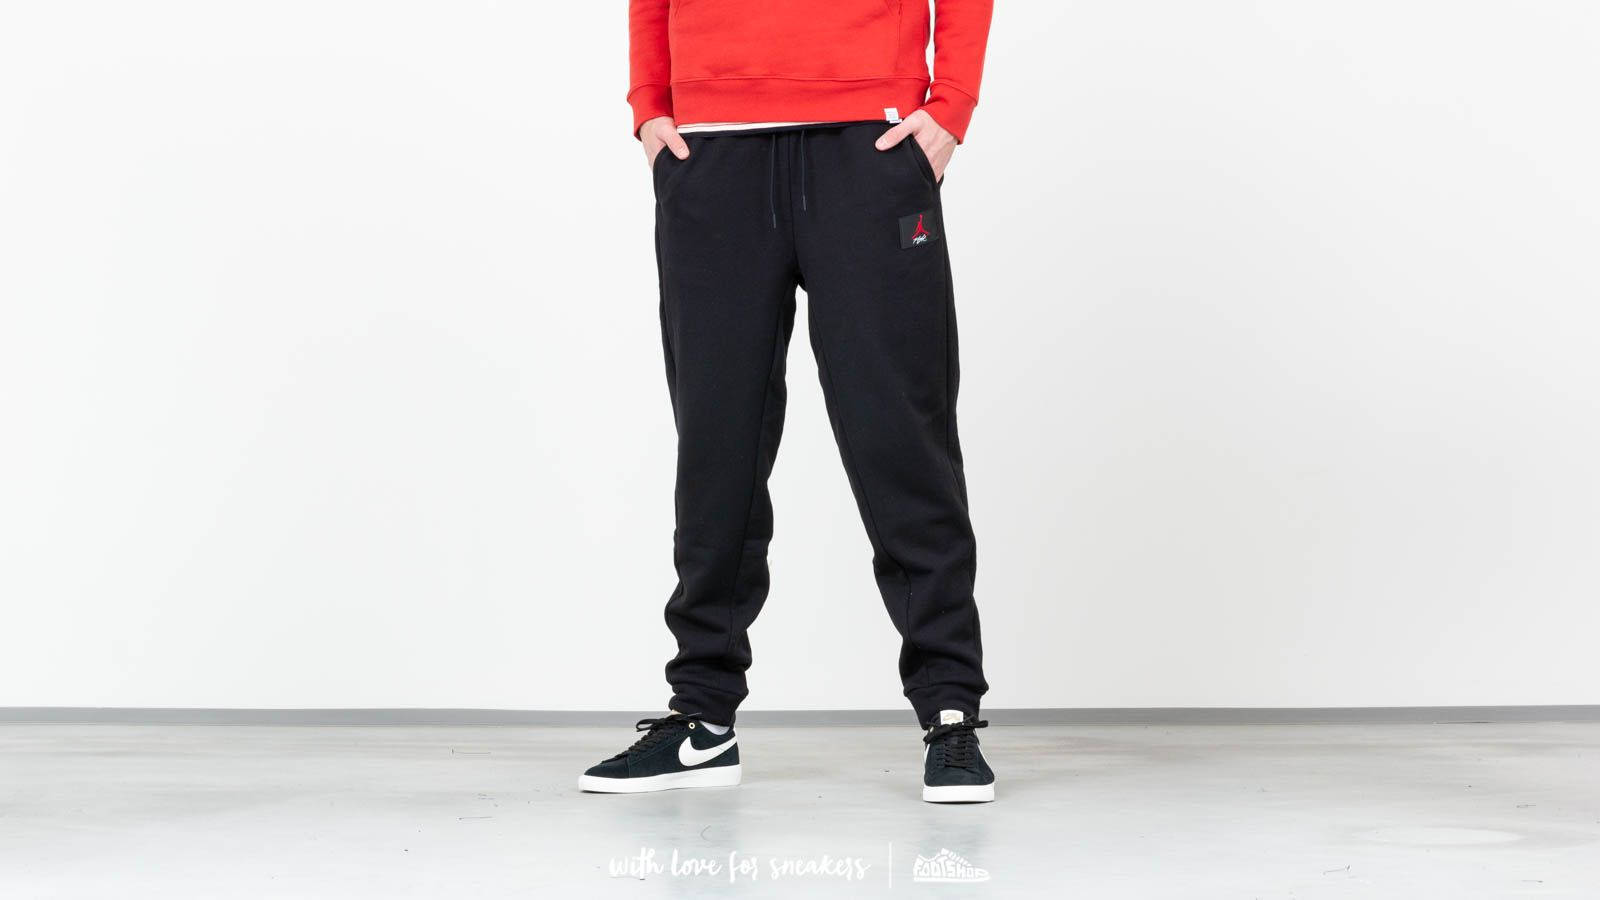 e5078da47ae3b Jordan Air Flight Loopback Pants Black a prezzo eccezionale 78 € acquistate  su Footshop.it